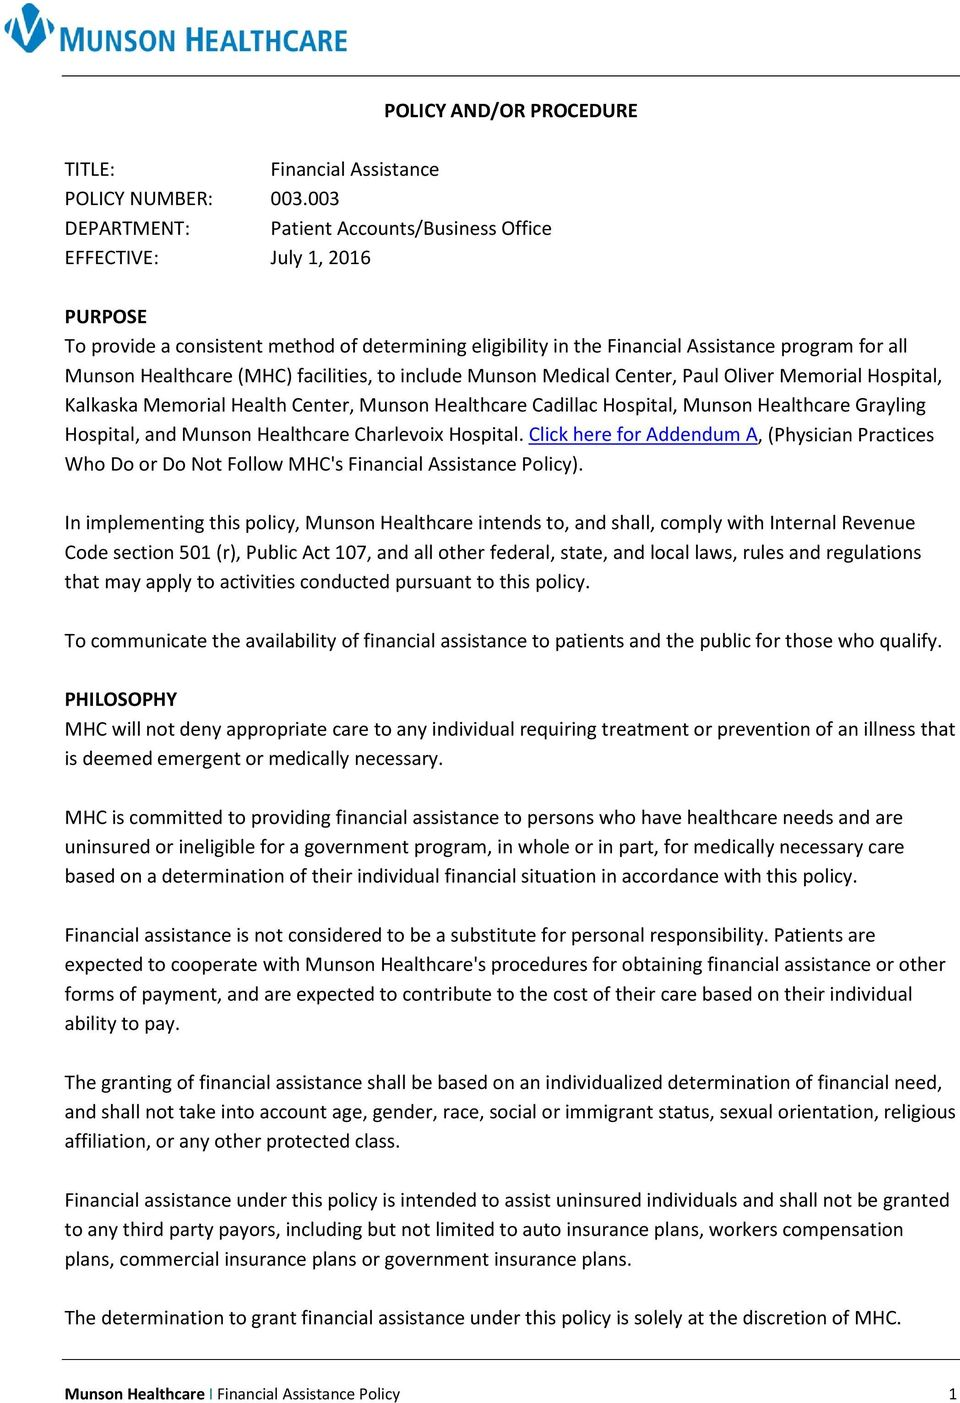 Healthcare (MHC) facilities, to include Munson Medical Center, Paul Oliver Memorial Hospital, Kalkaska Memorial Health Center, Munson Healthcare Cadillac Hospital, Munson Healthcare Grayling